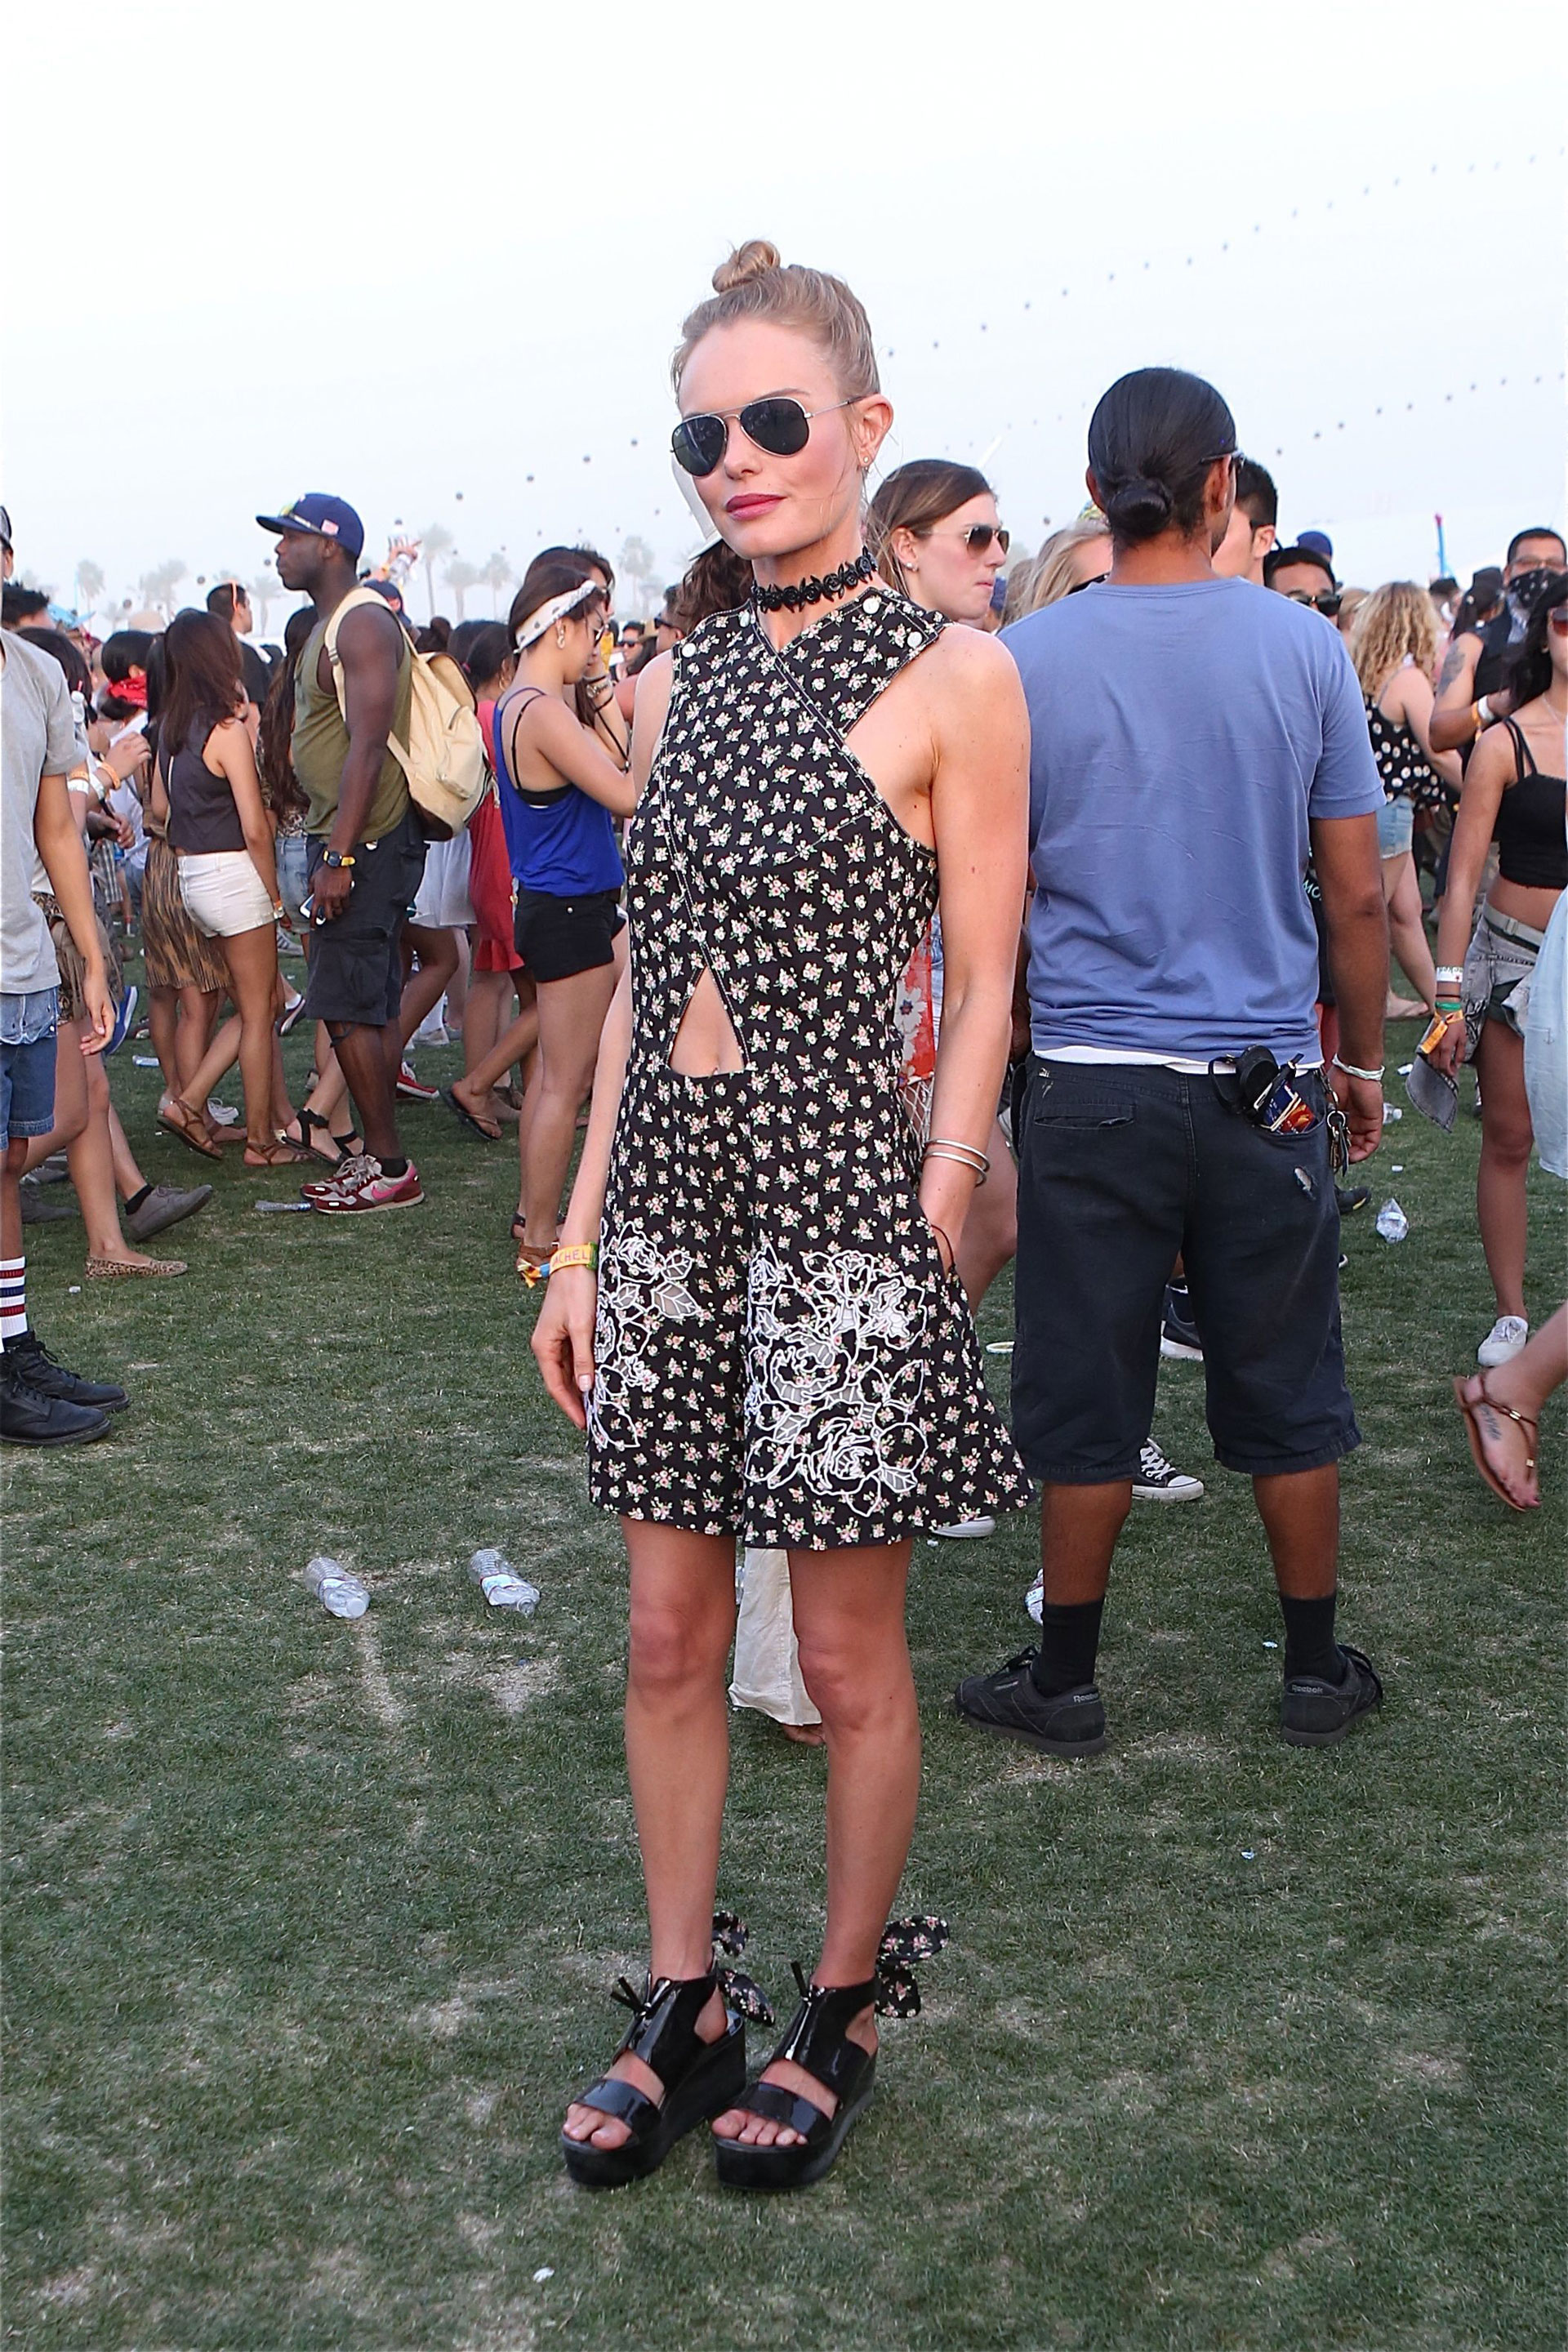 Get celebrity fashion inspiration for your next music festival